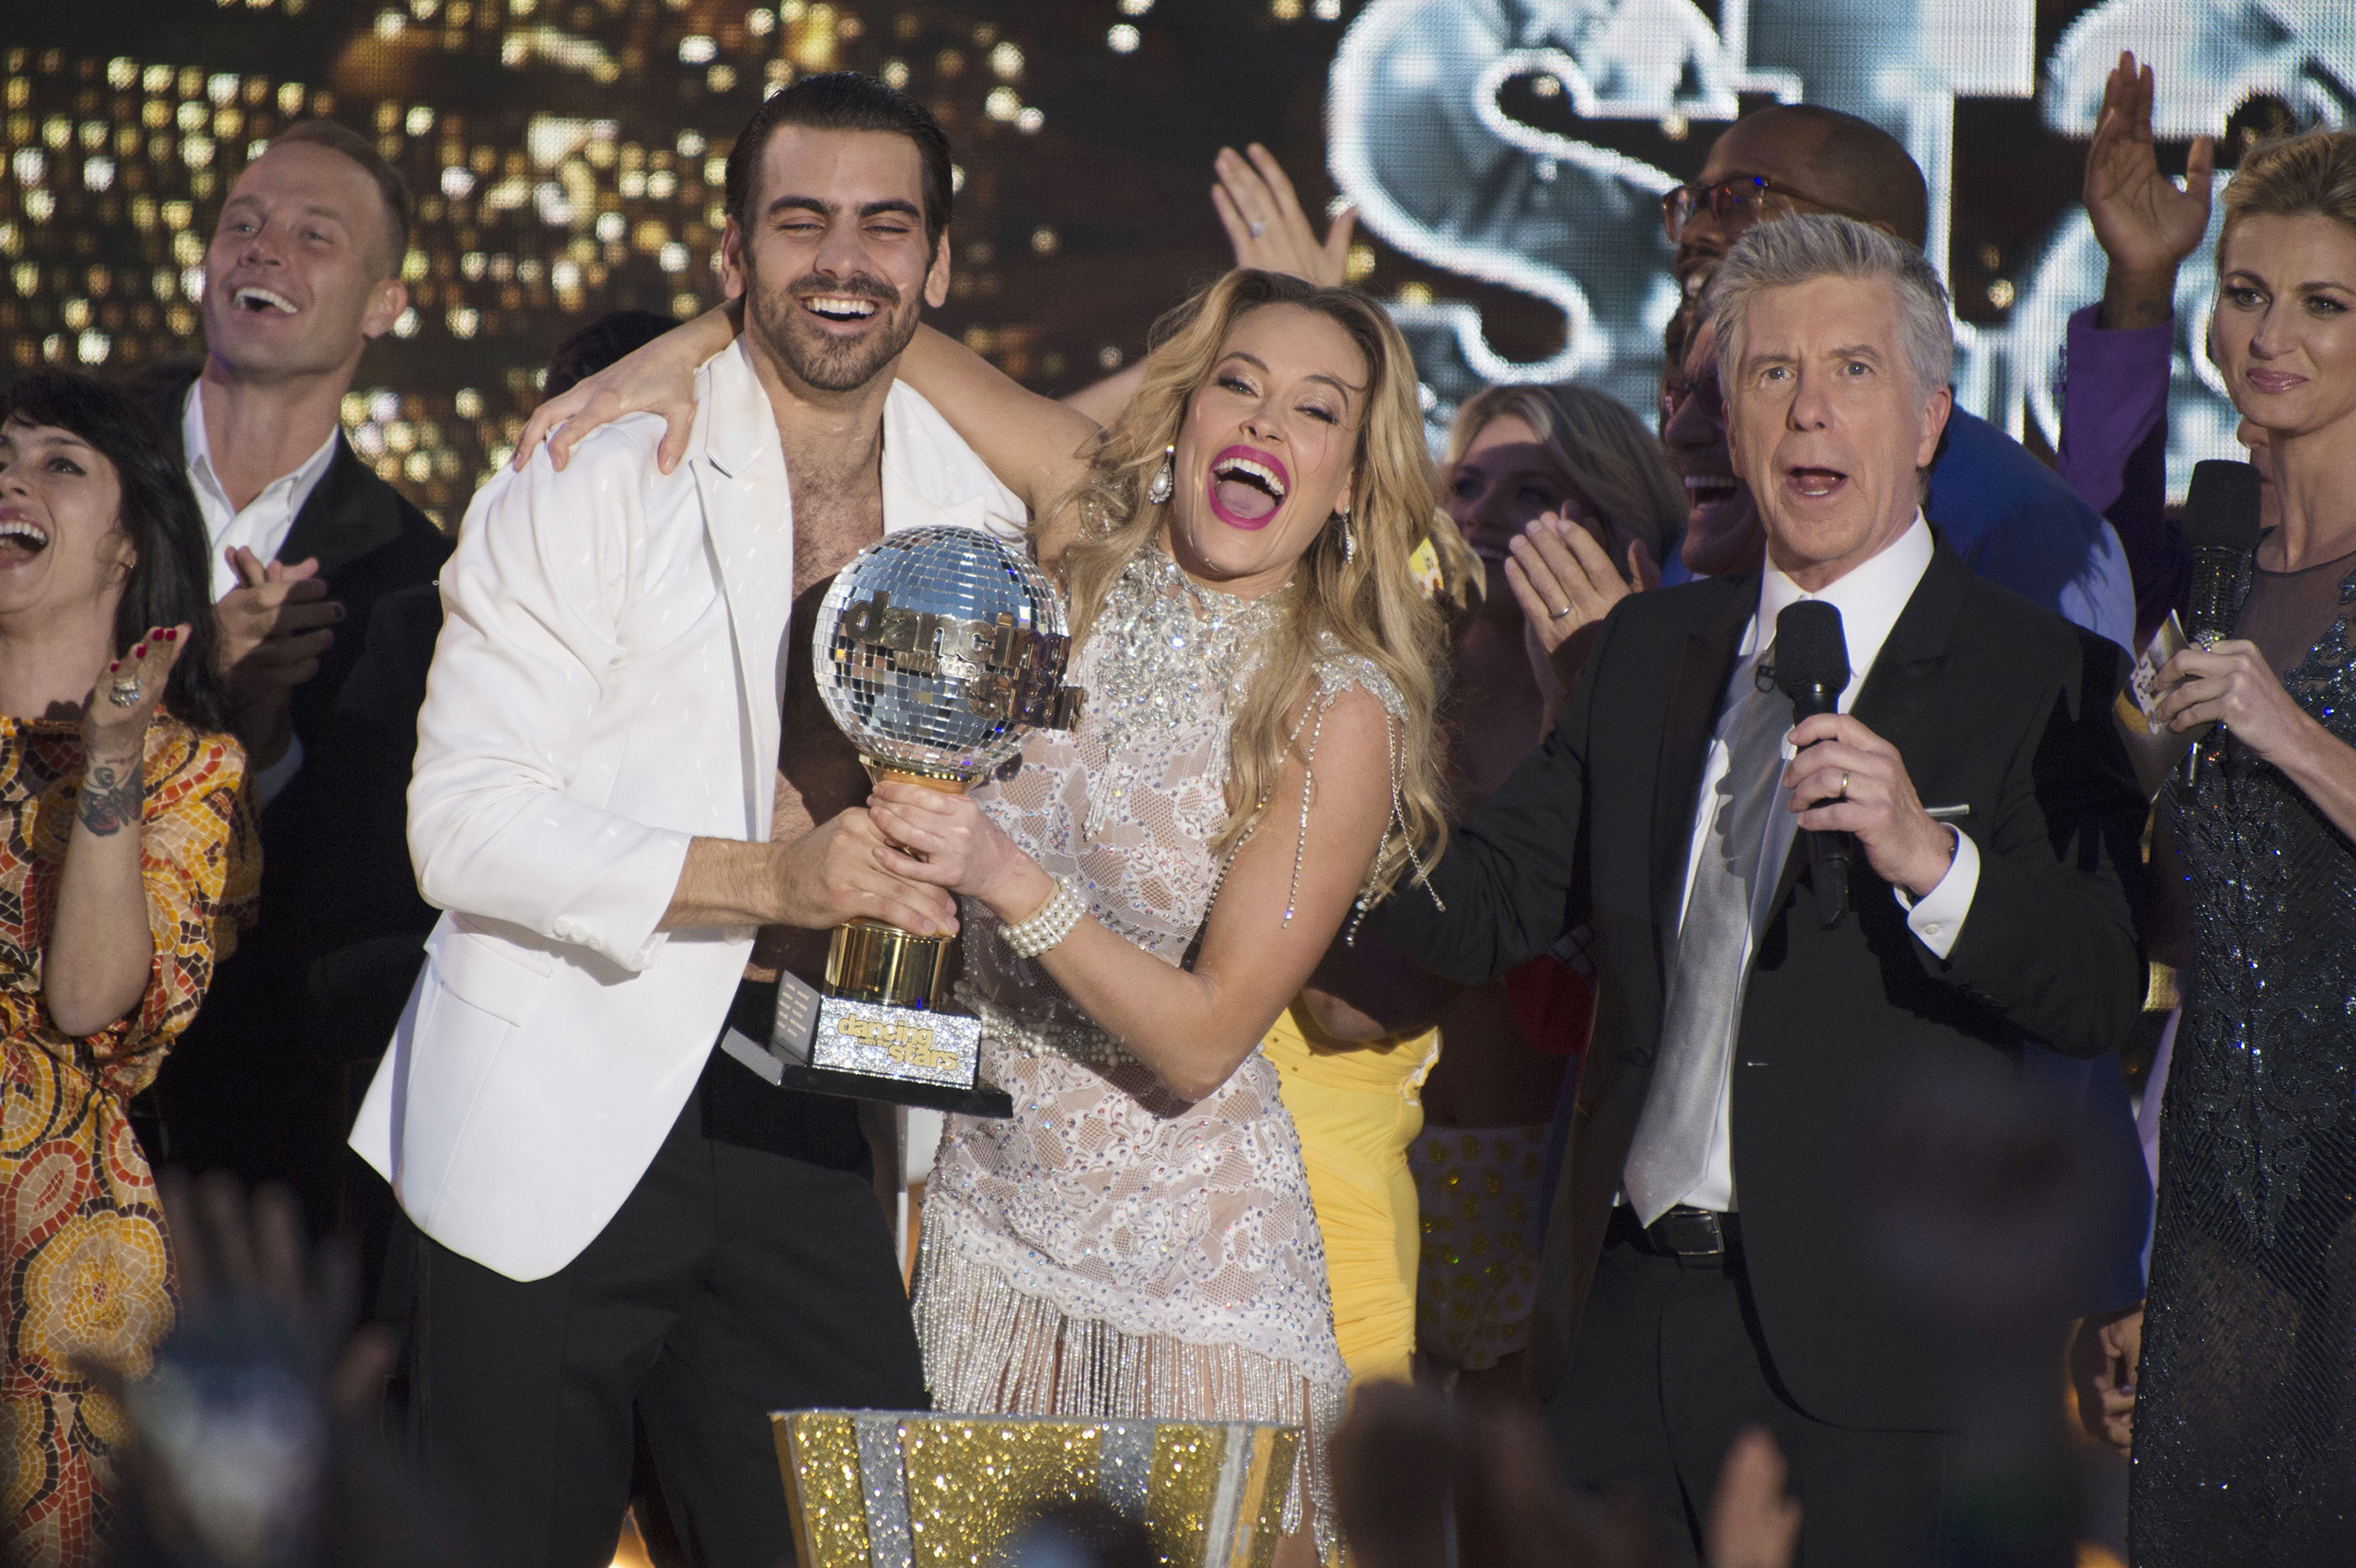 Nyle DiMarco and Peta Murgatroyd on Dancing with the Stars, May 24, 2016.